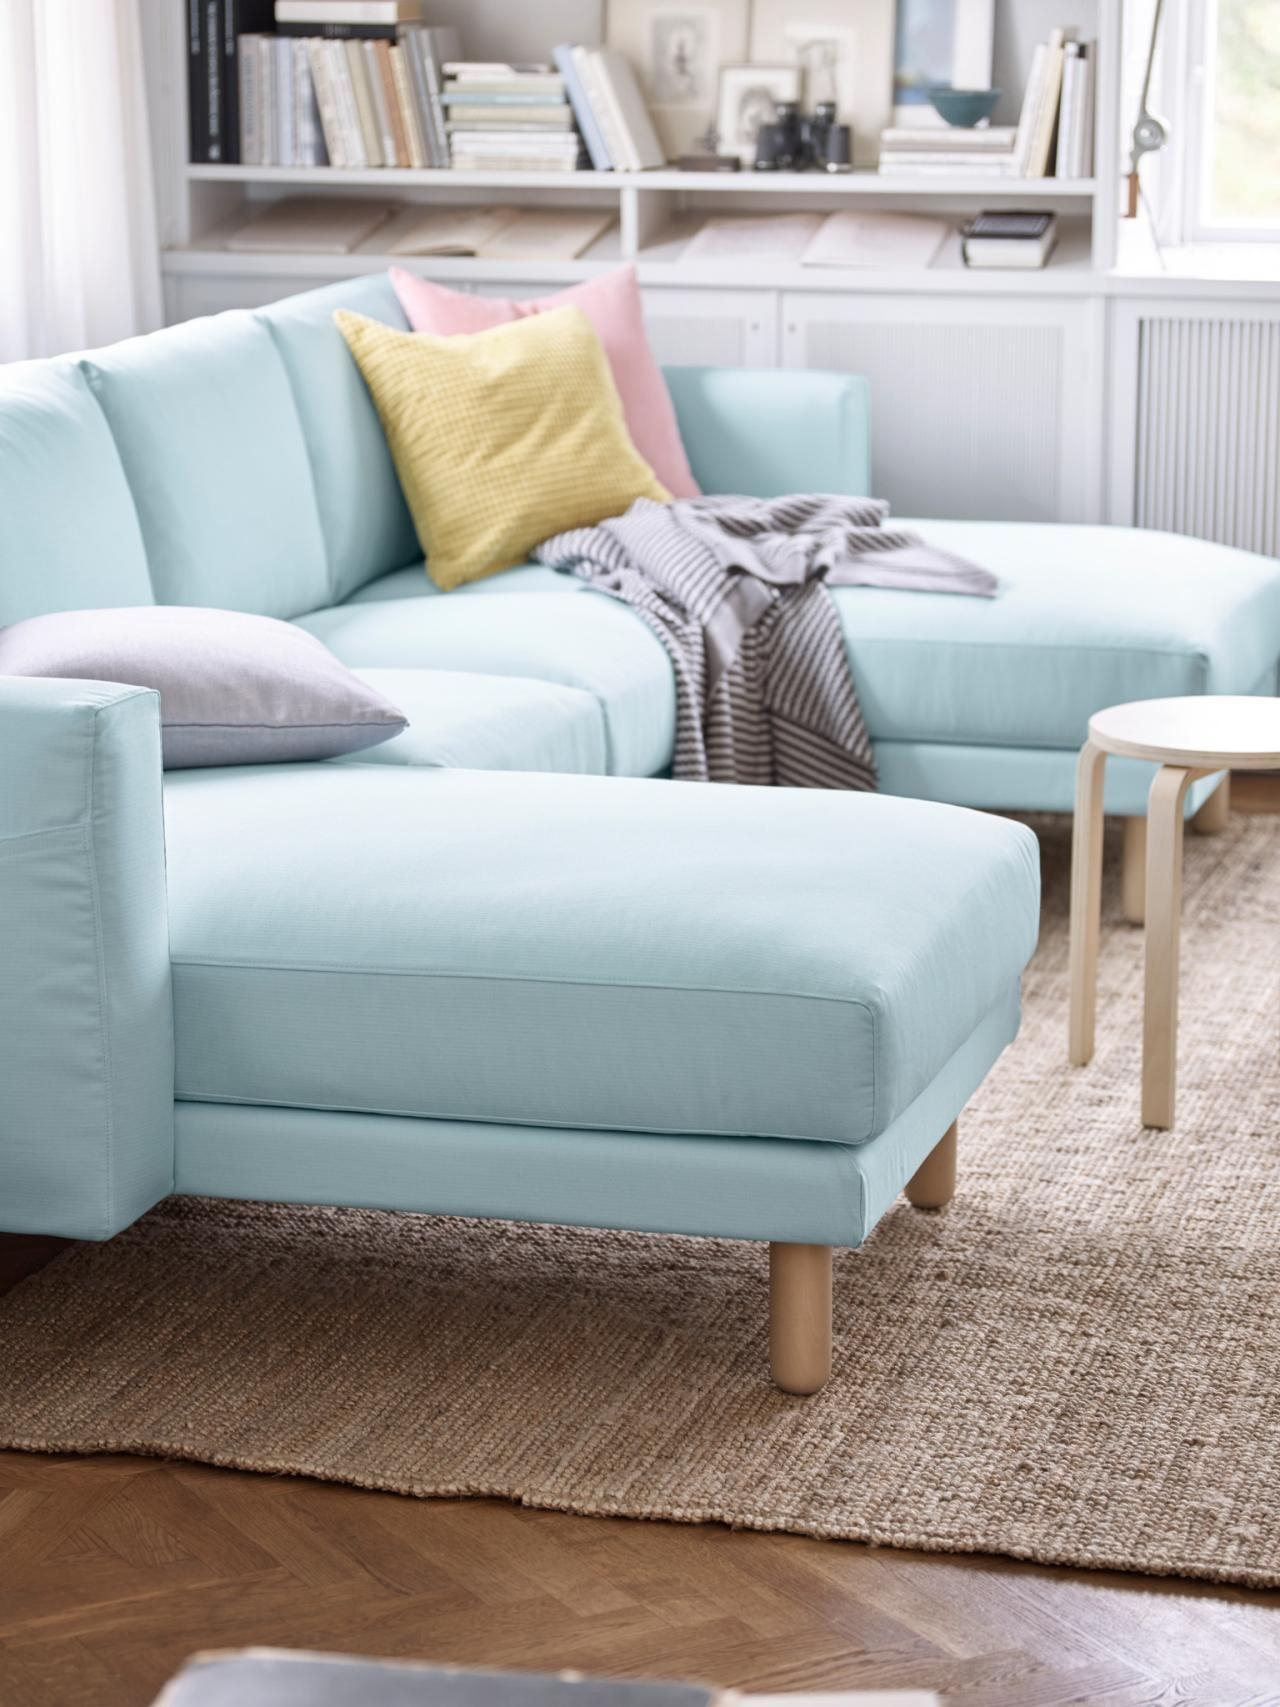 5 Apartment Sized Sofas That Are Lifesavers | Hgtv's Decorating With Regard To Narrow Depth Sofas (Image 2 of 20)